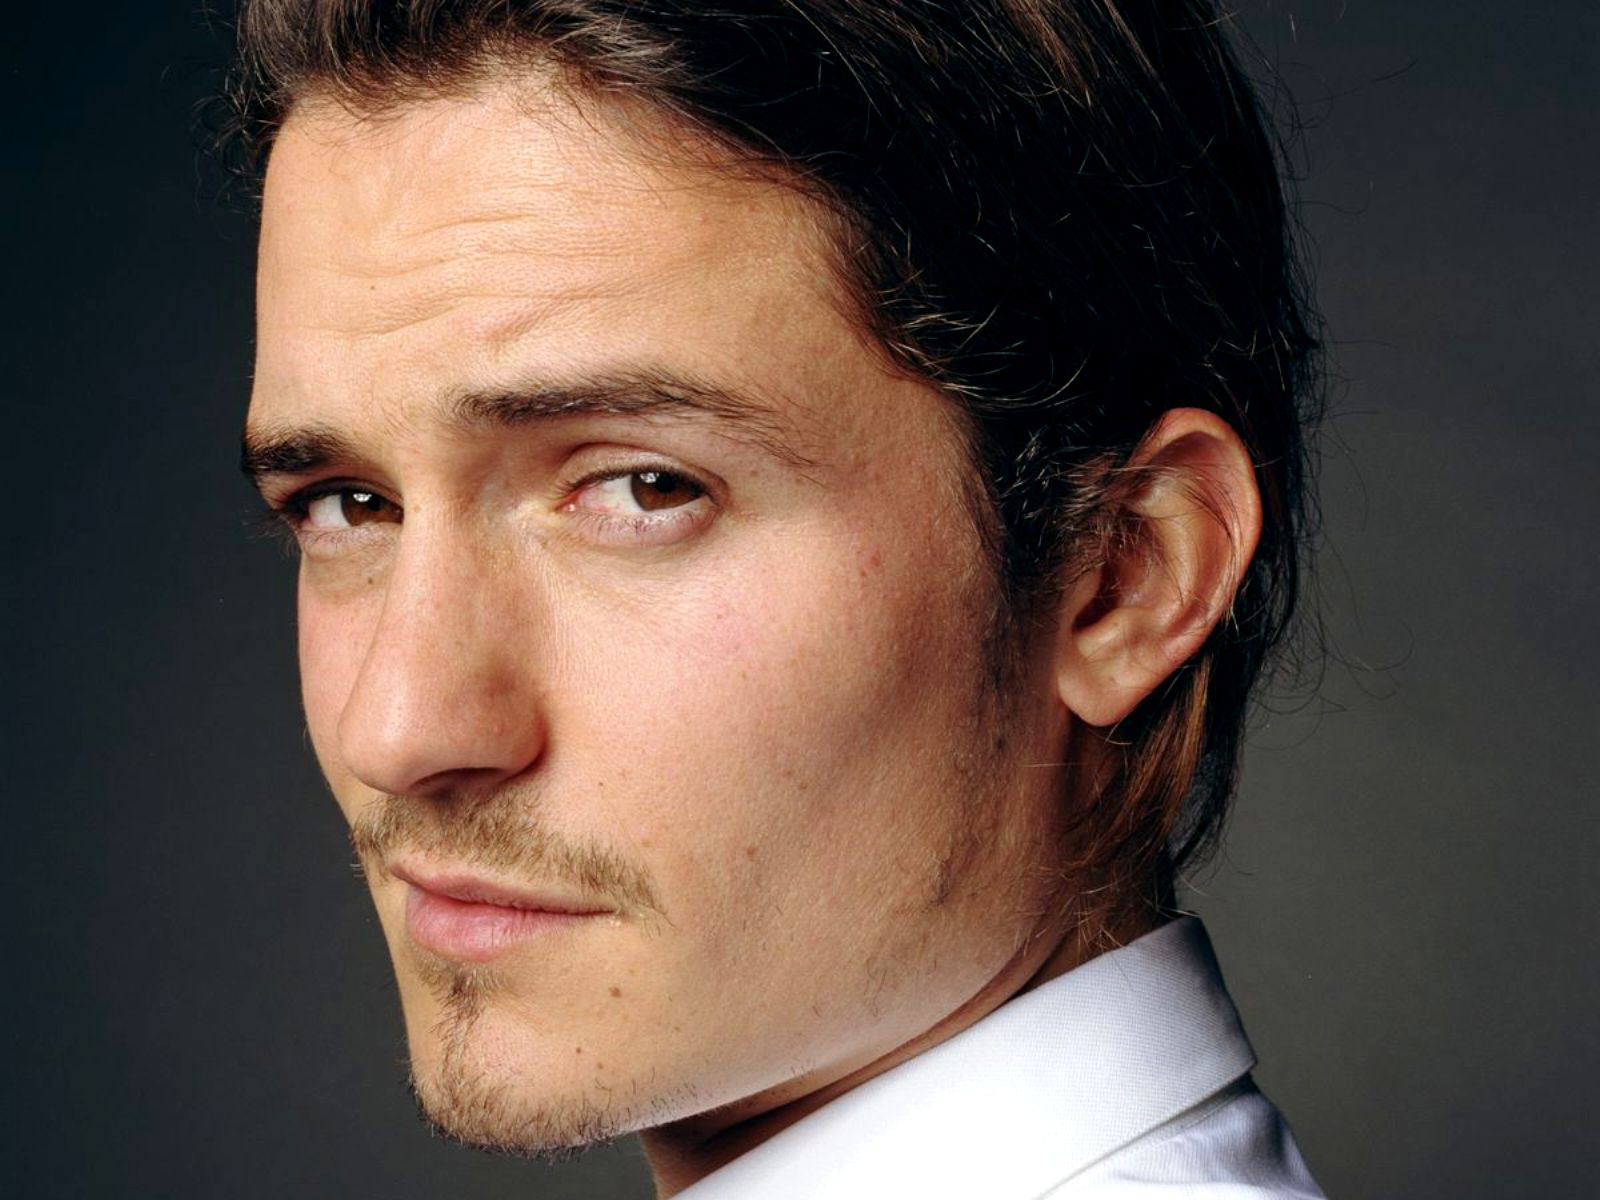 Orlando Bloom Wallpaper 2013 Orlando Bloom Wallpape...